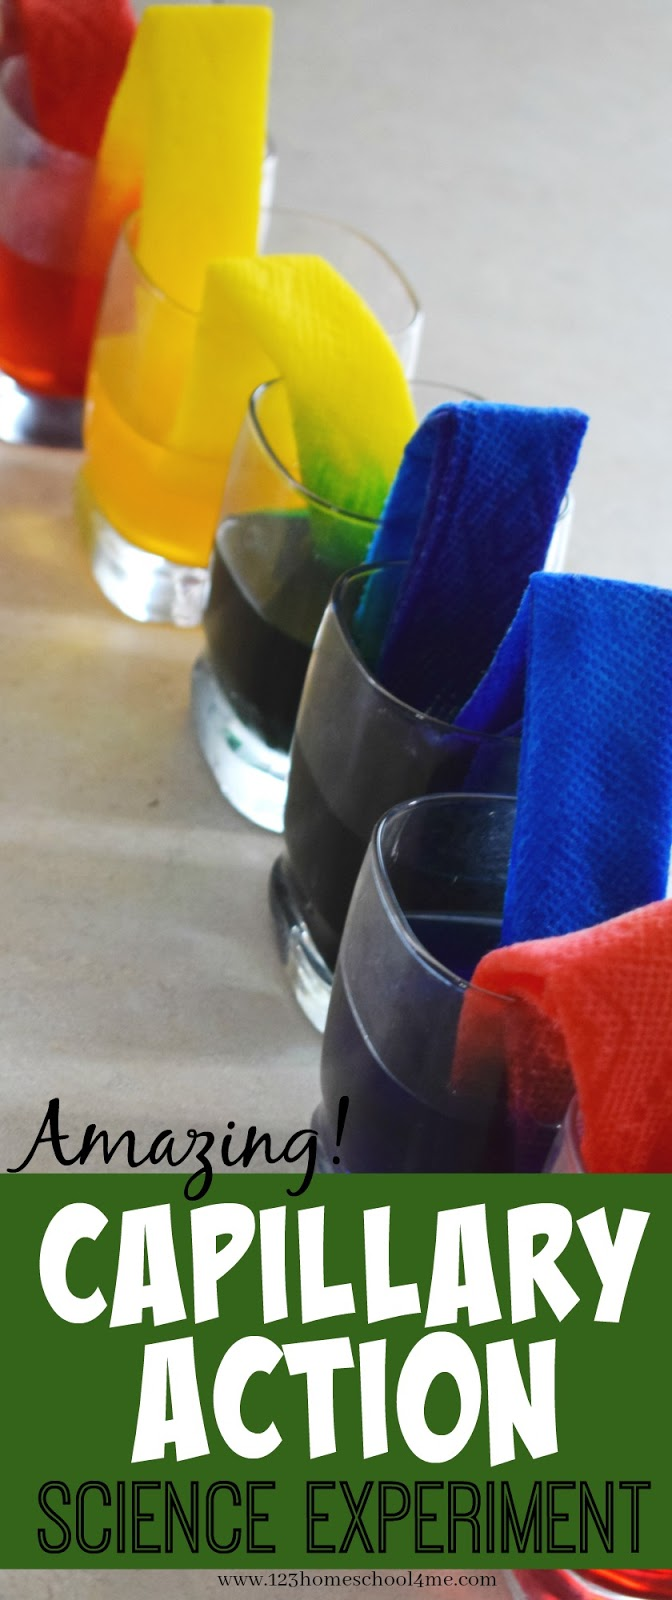 Capillary Action Science Experiment - Tapatalk